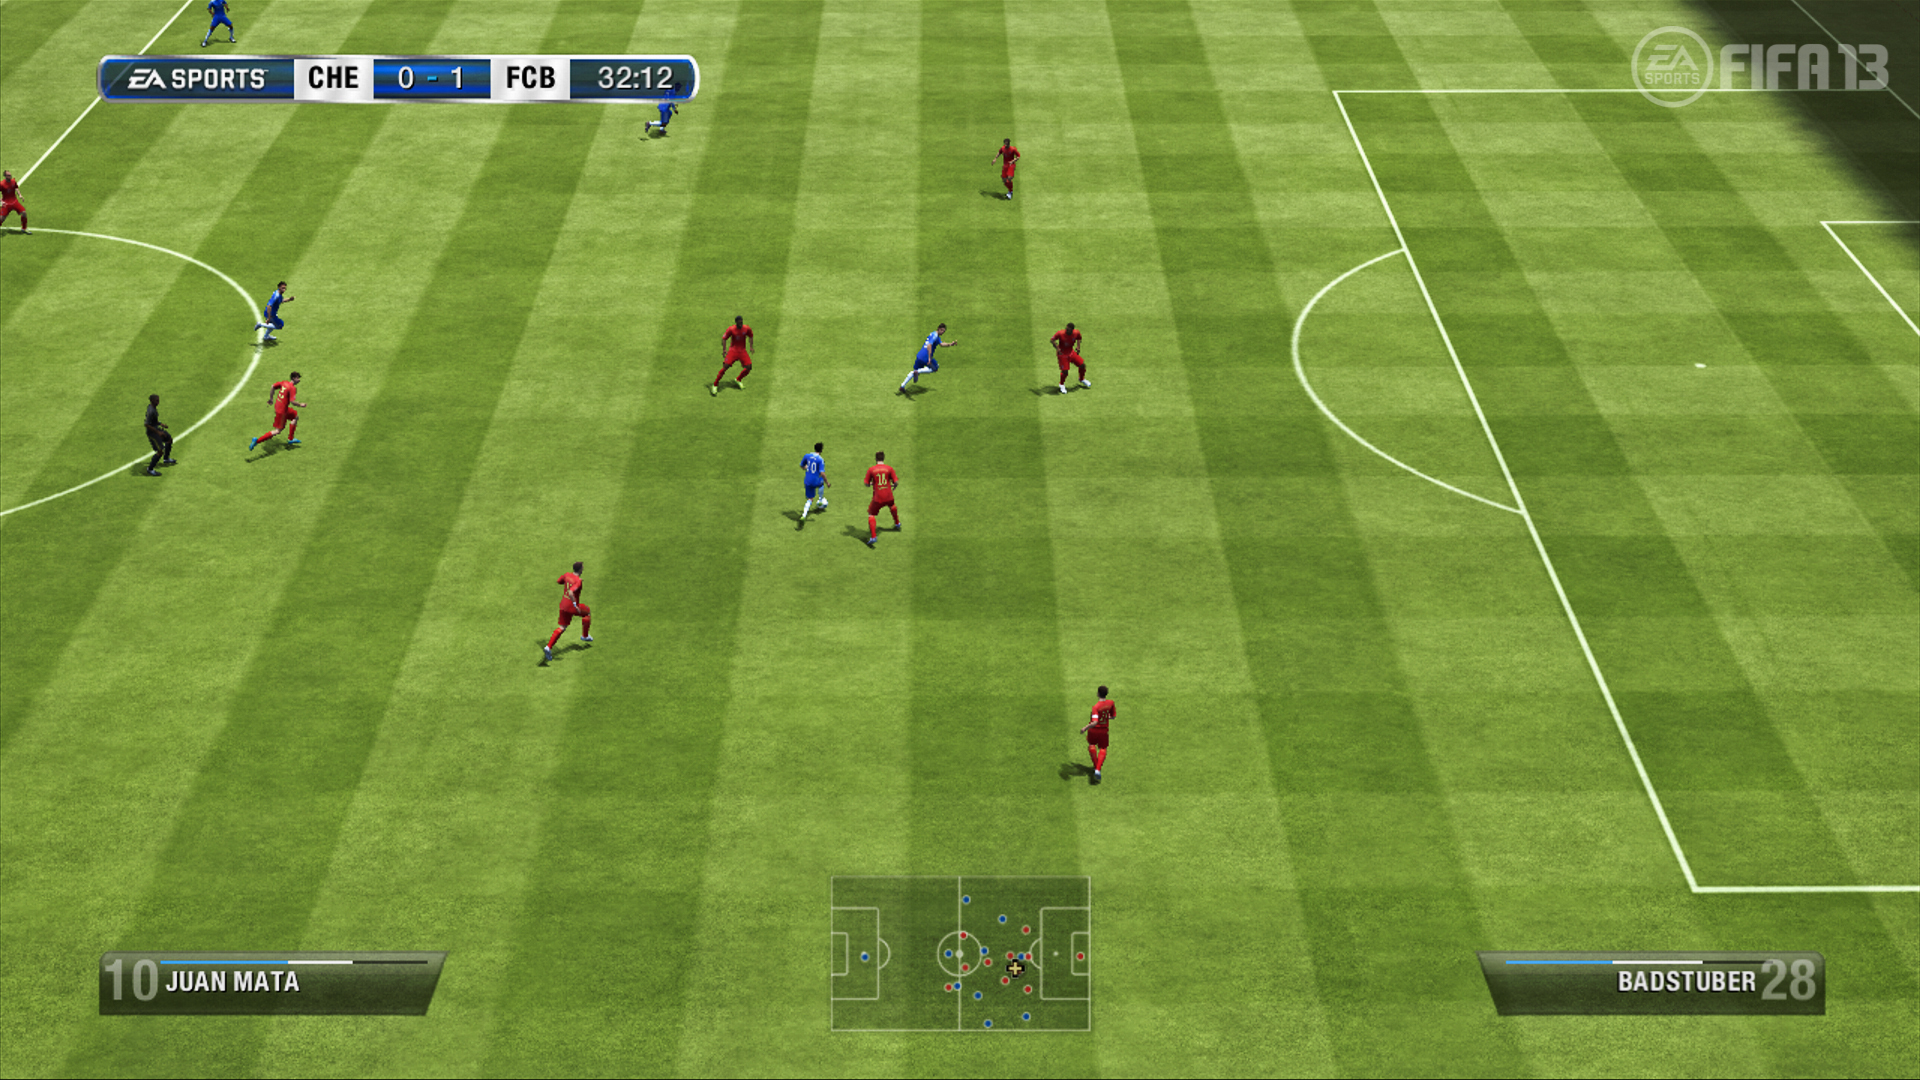 FIFA 13 PS Vita Review: Handheld Game Console Game Gets Red Card